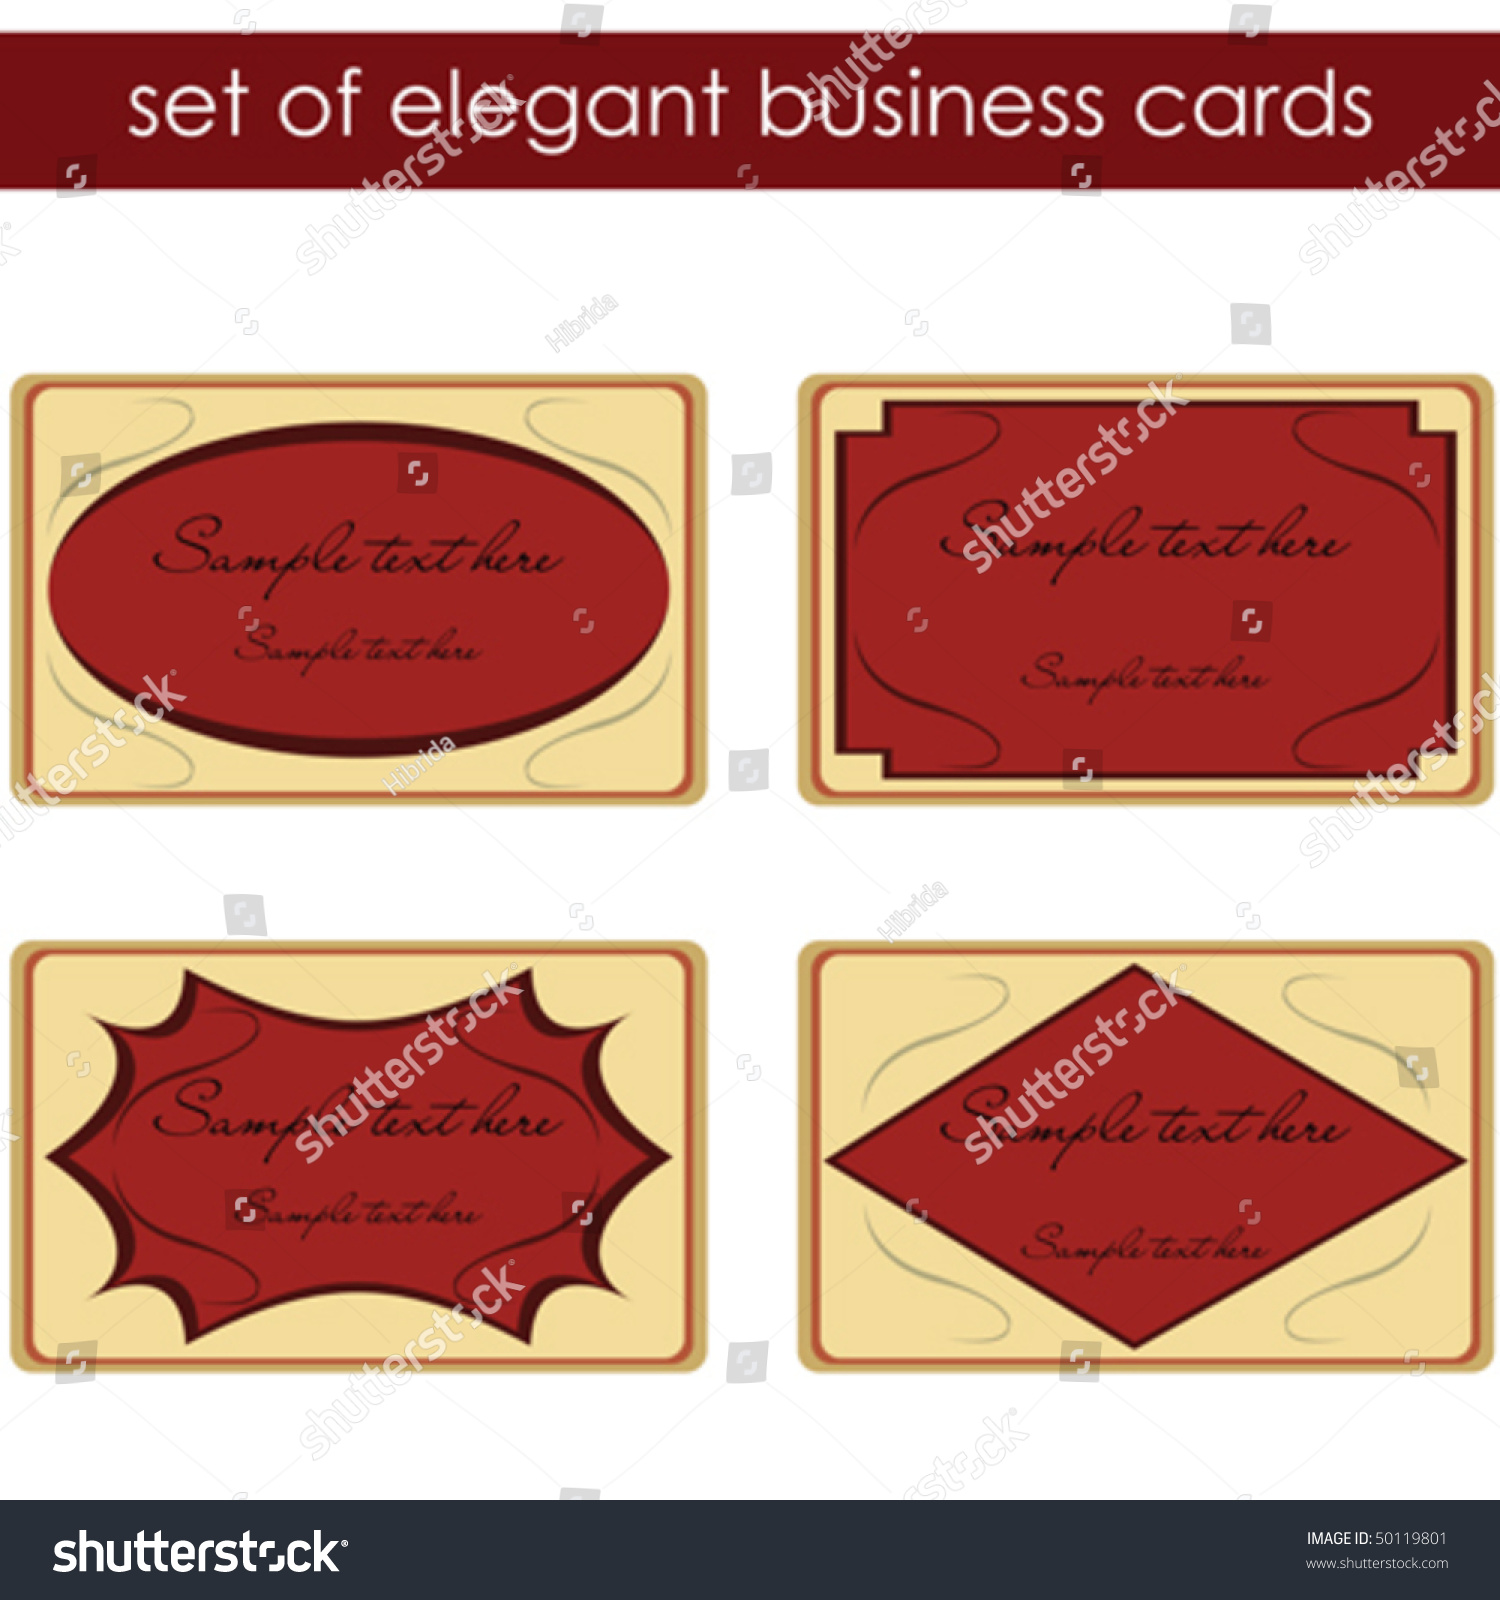 Elegant business cards labels stock vector 50119801 shutterstock elegant business cards labels magicingreecefo Gallery